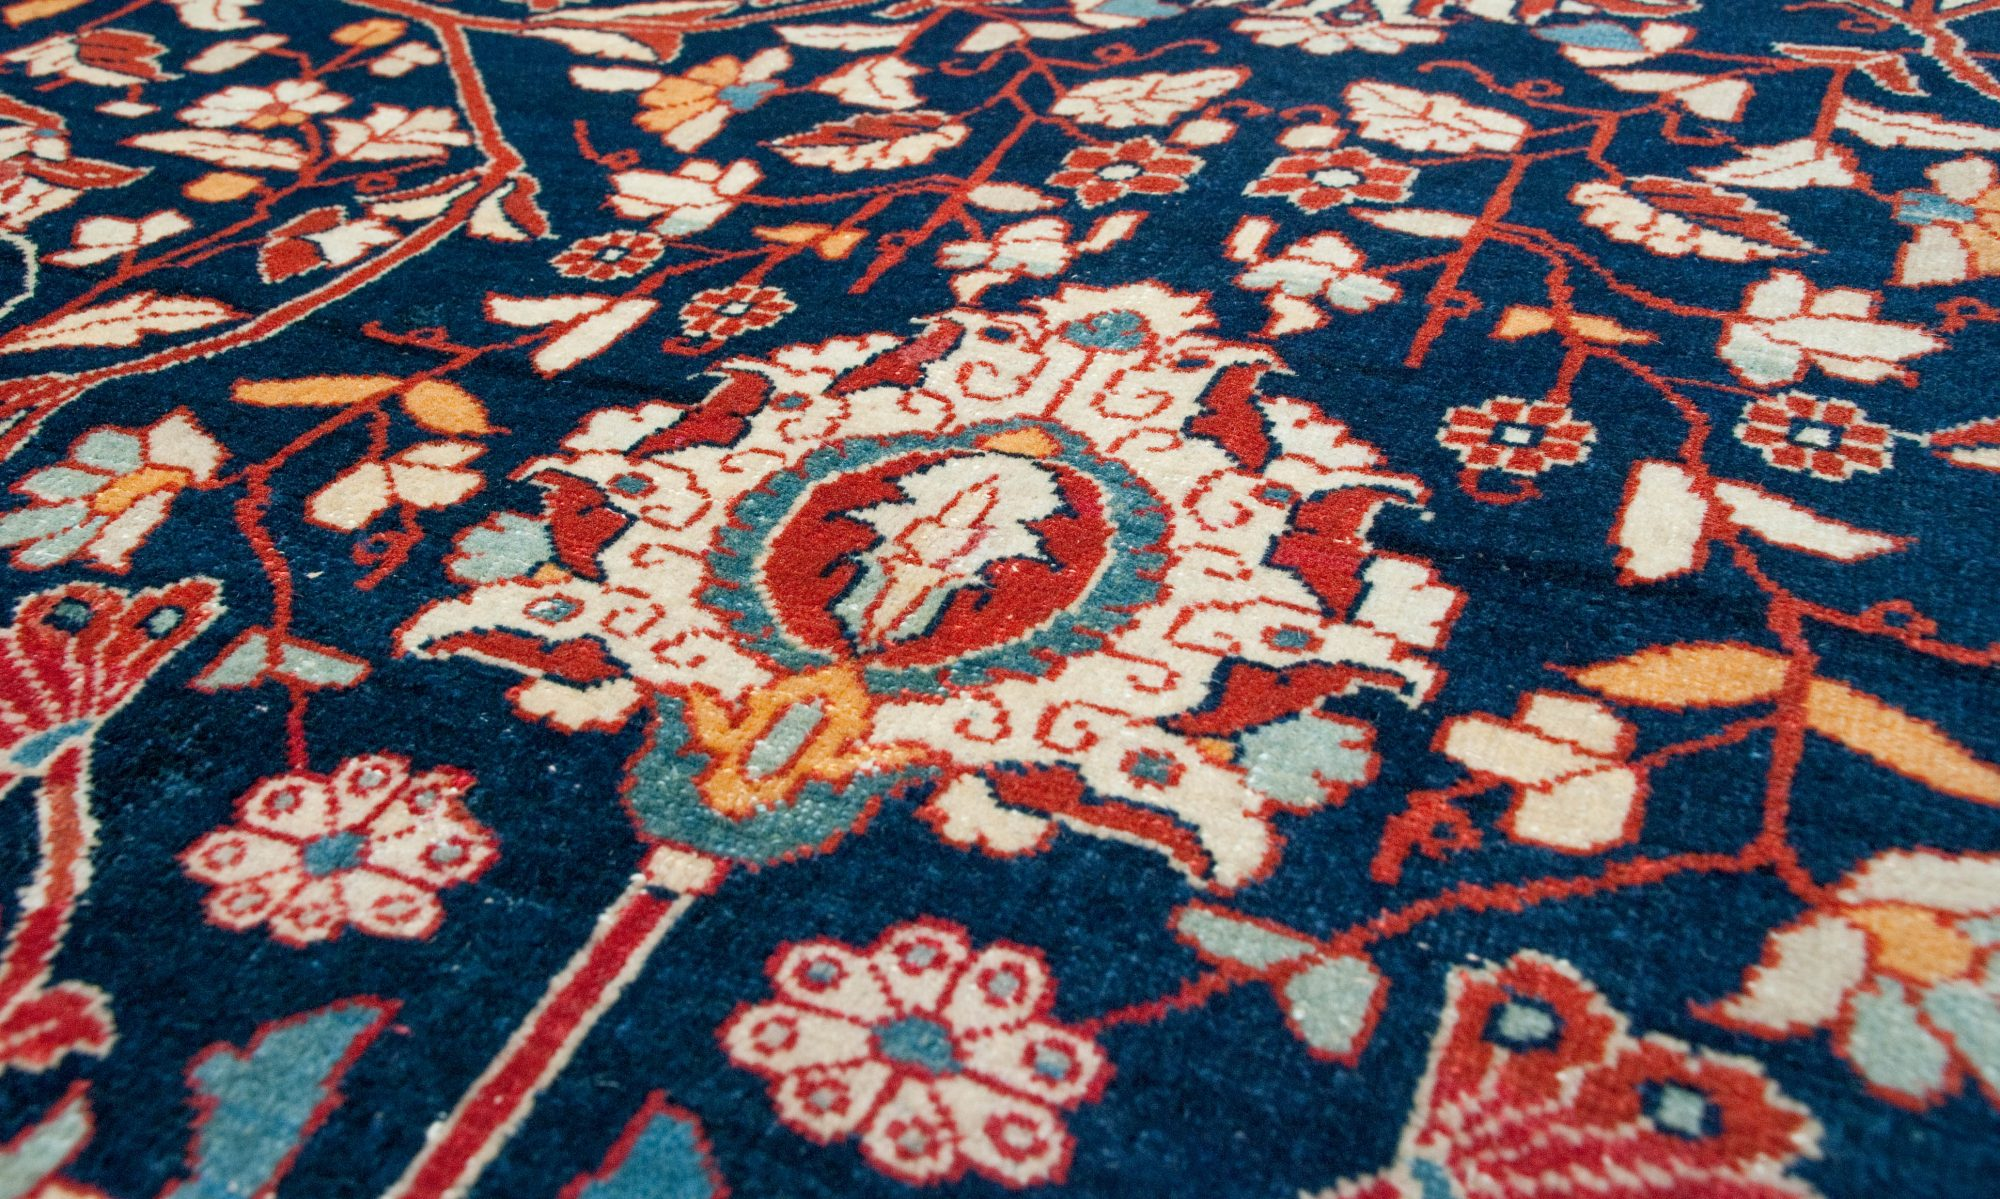 Carpets by Dilmaghani